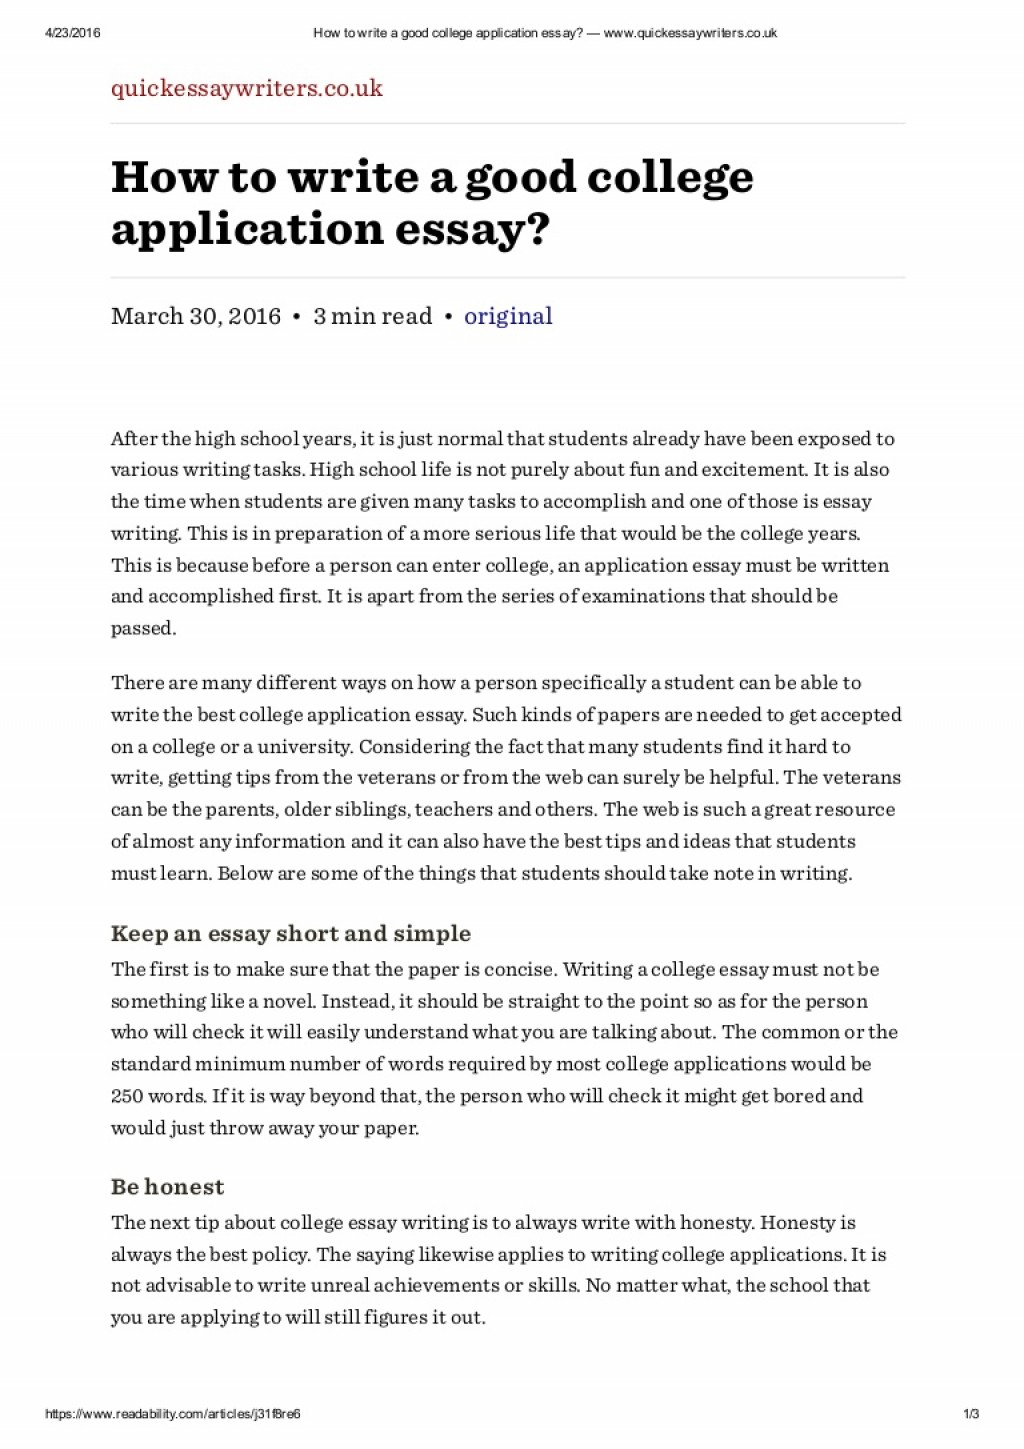 008 Essay Exampleonestyow To Write Good College Application Writing Essays Sampleowtowriteagoodcollegeapplicationessaywww Thumbn Scholarship For Your Mba Examples University Staggering Honesty In Tamil Pdf Large